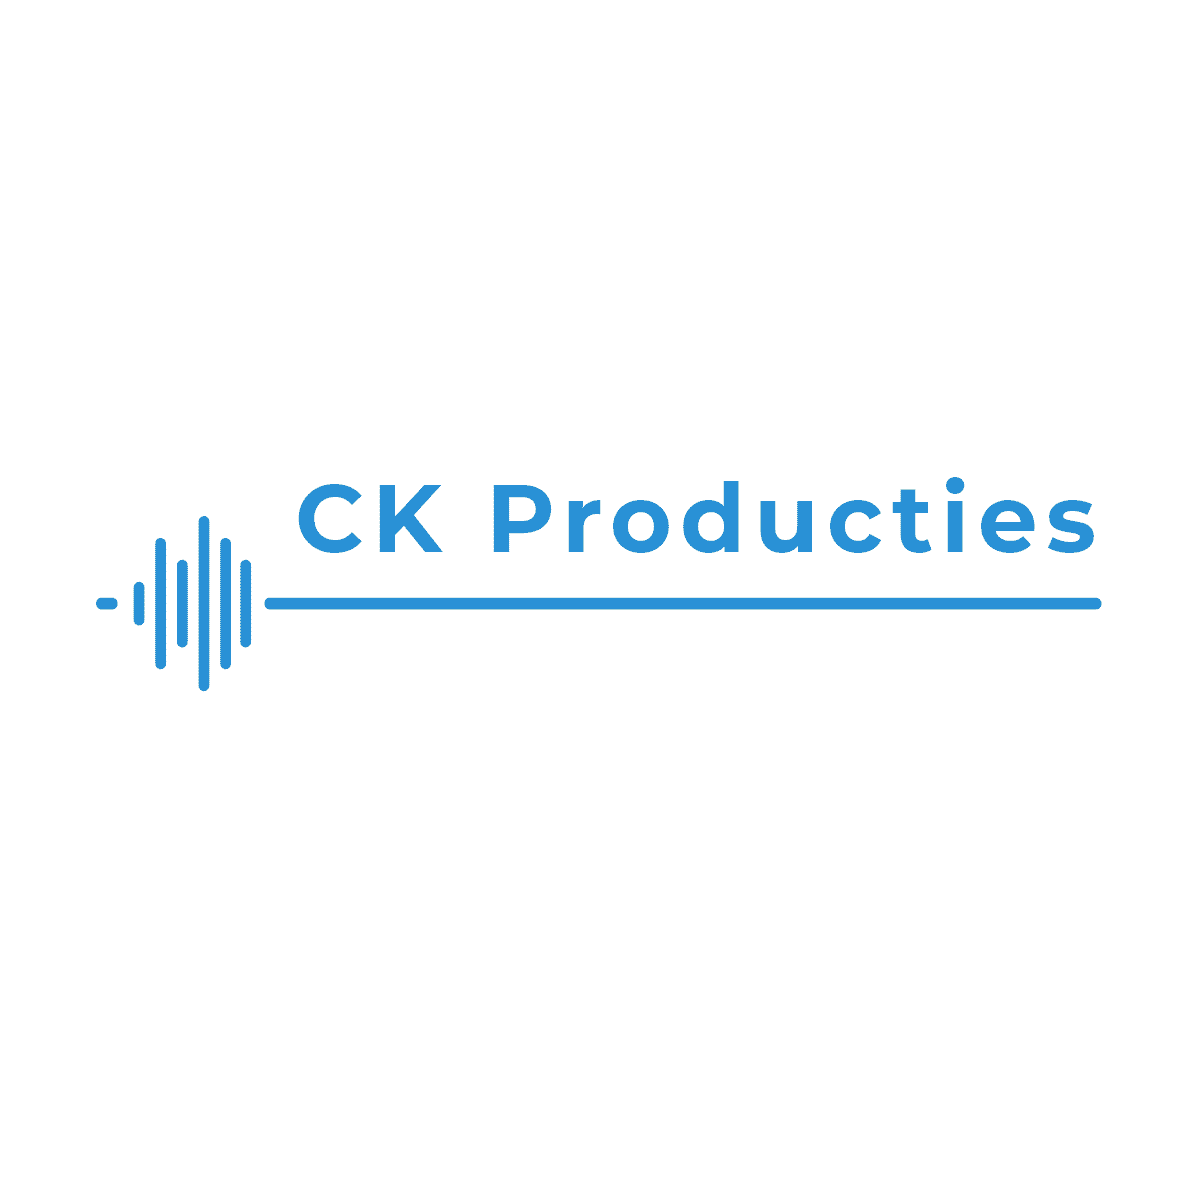 Ckproducties